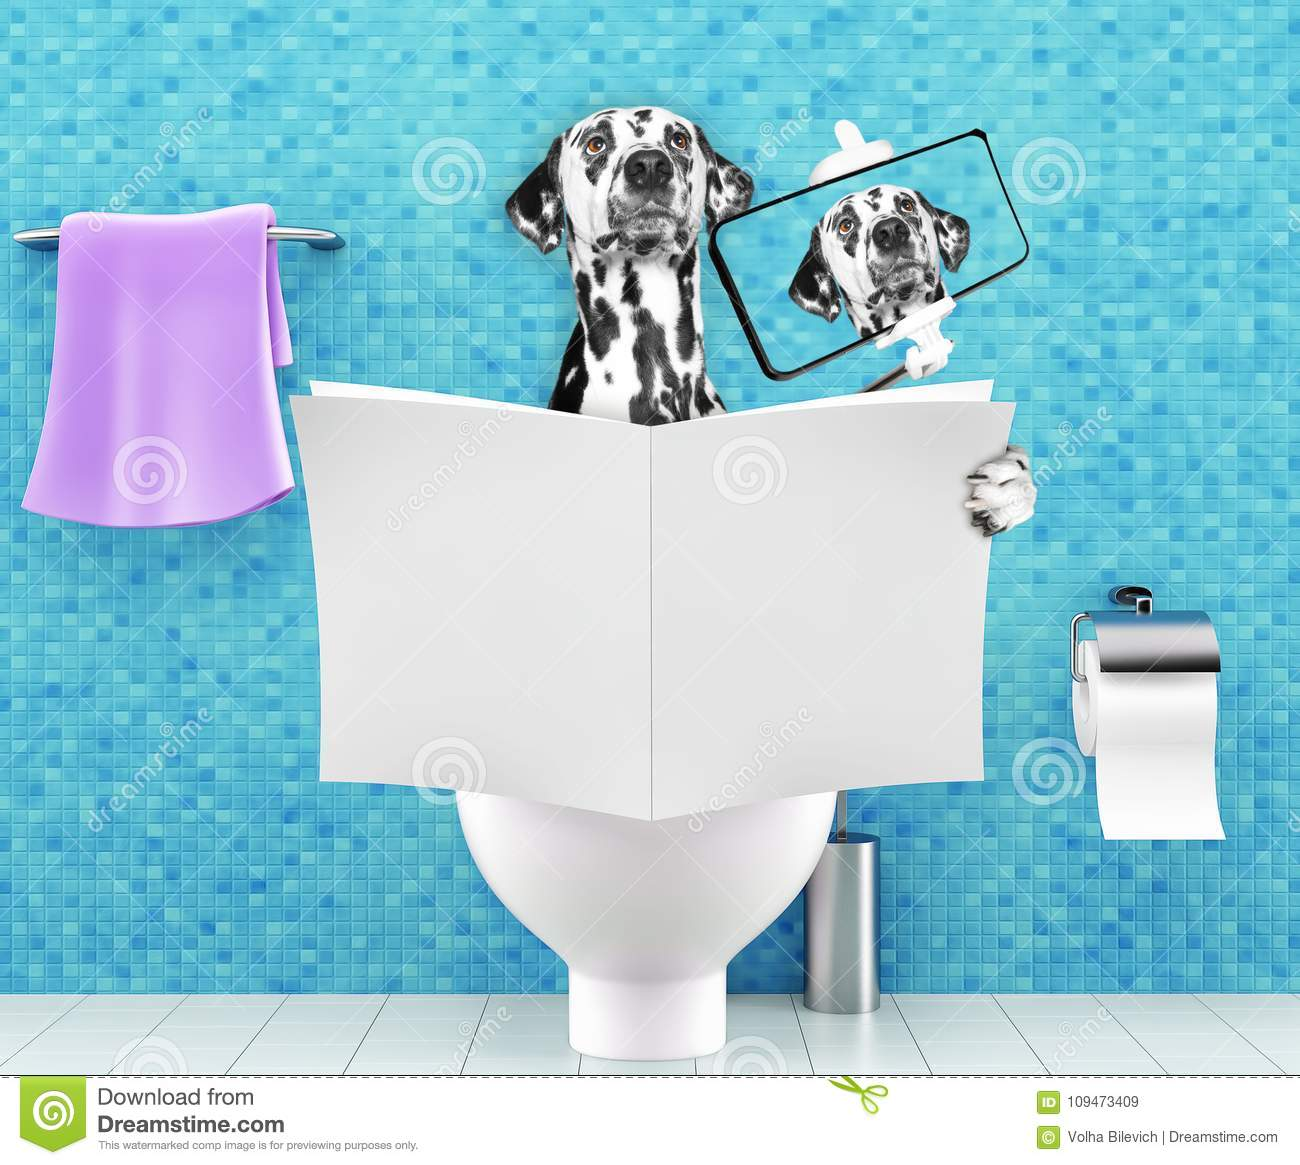 Dog sitting on a toilet seat with digestion problems or constipation reading magazine or newspaper and making selfie